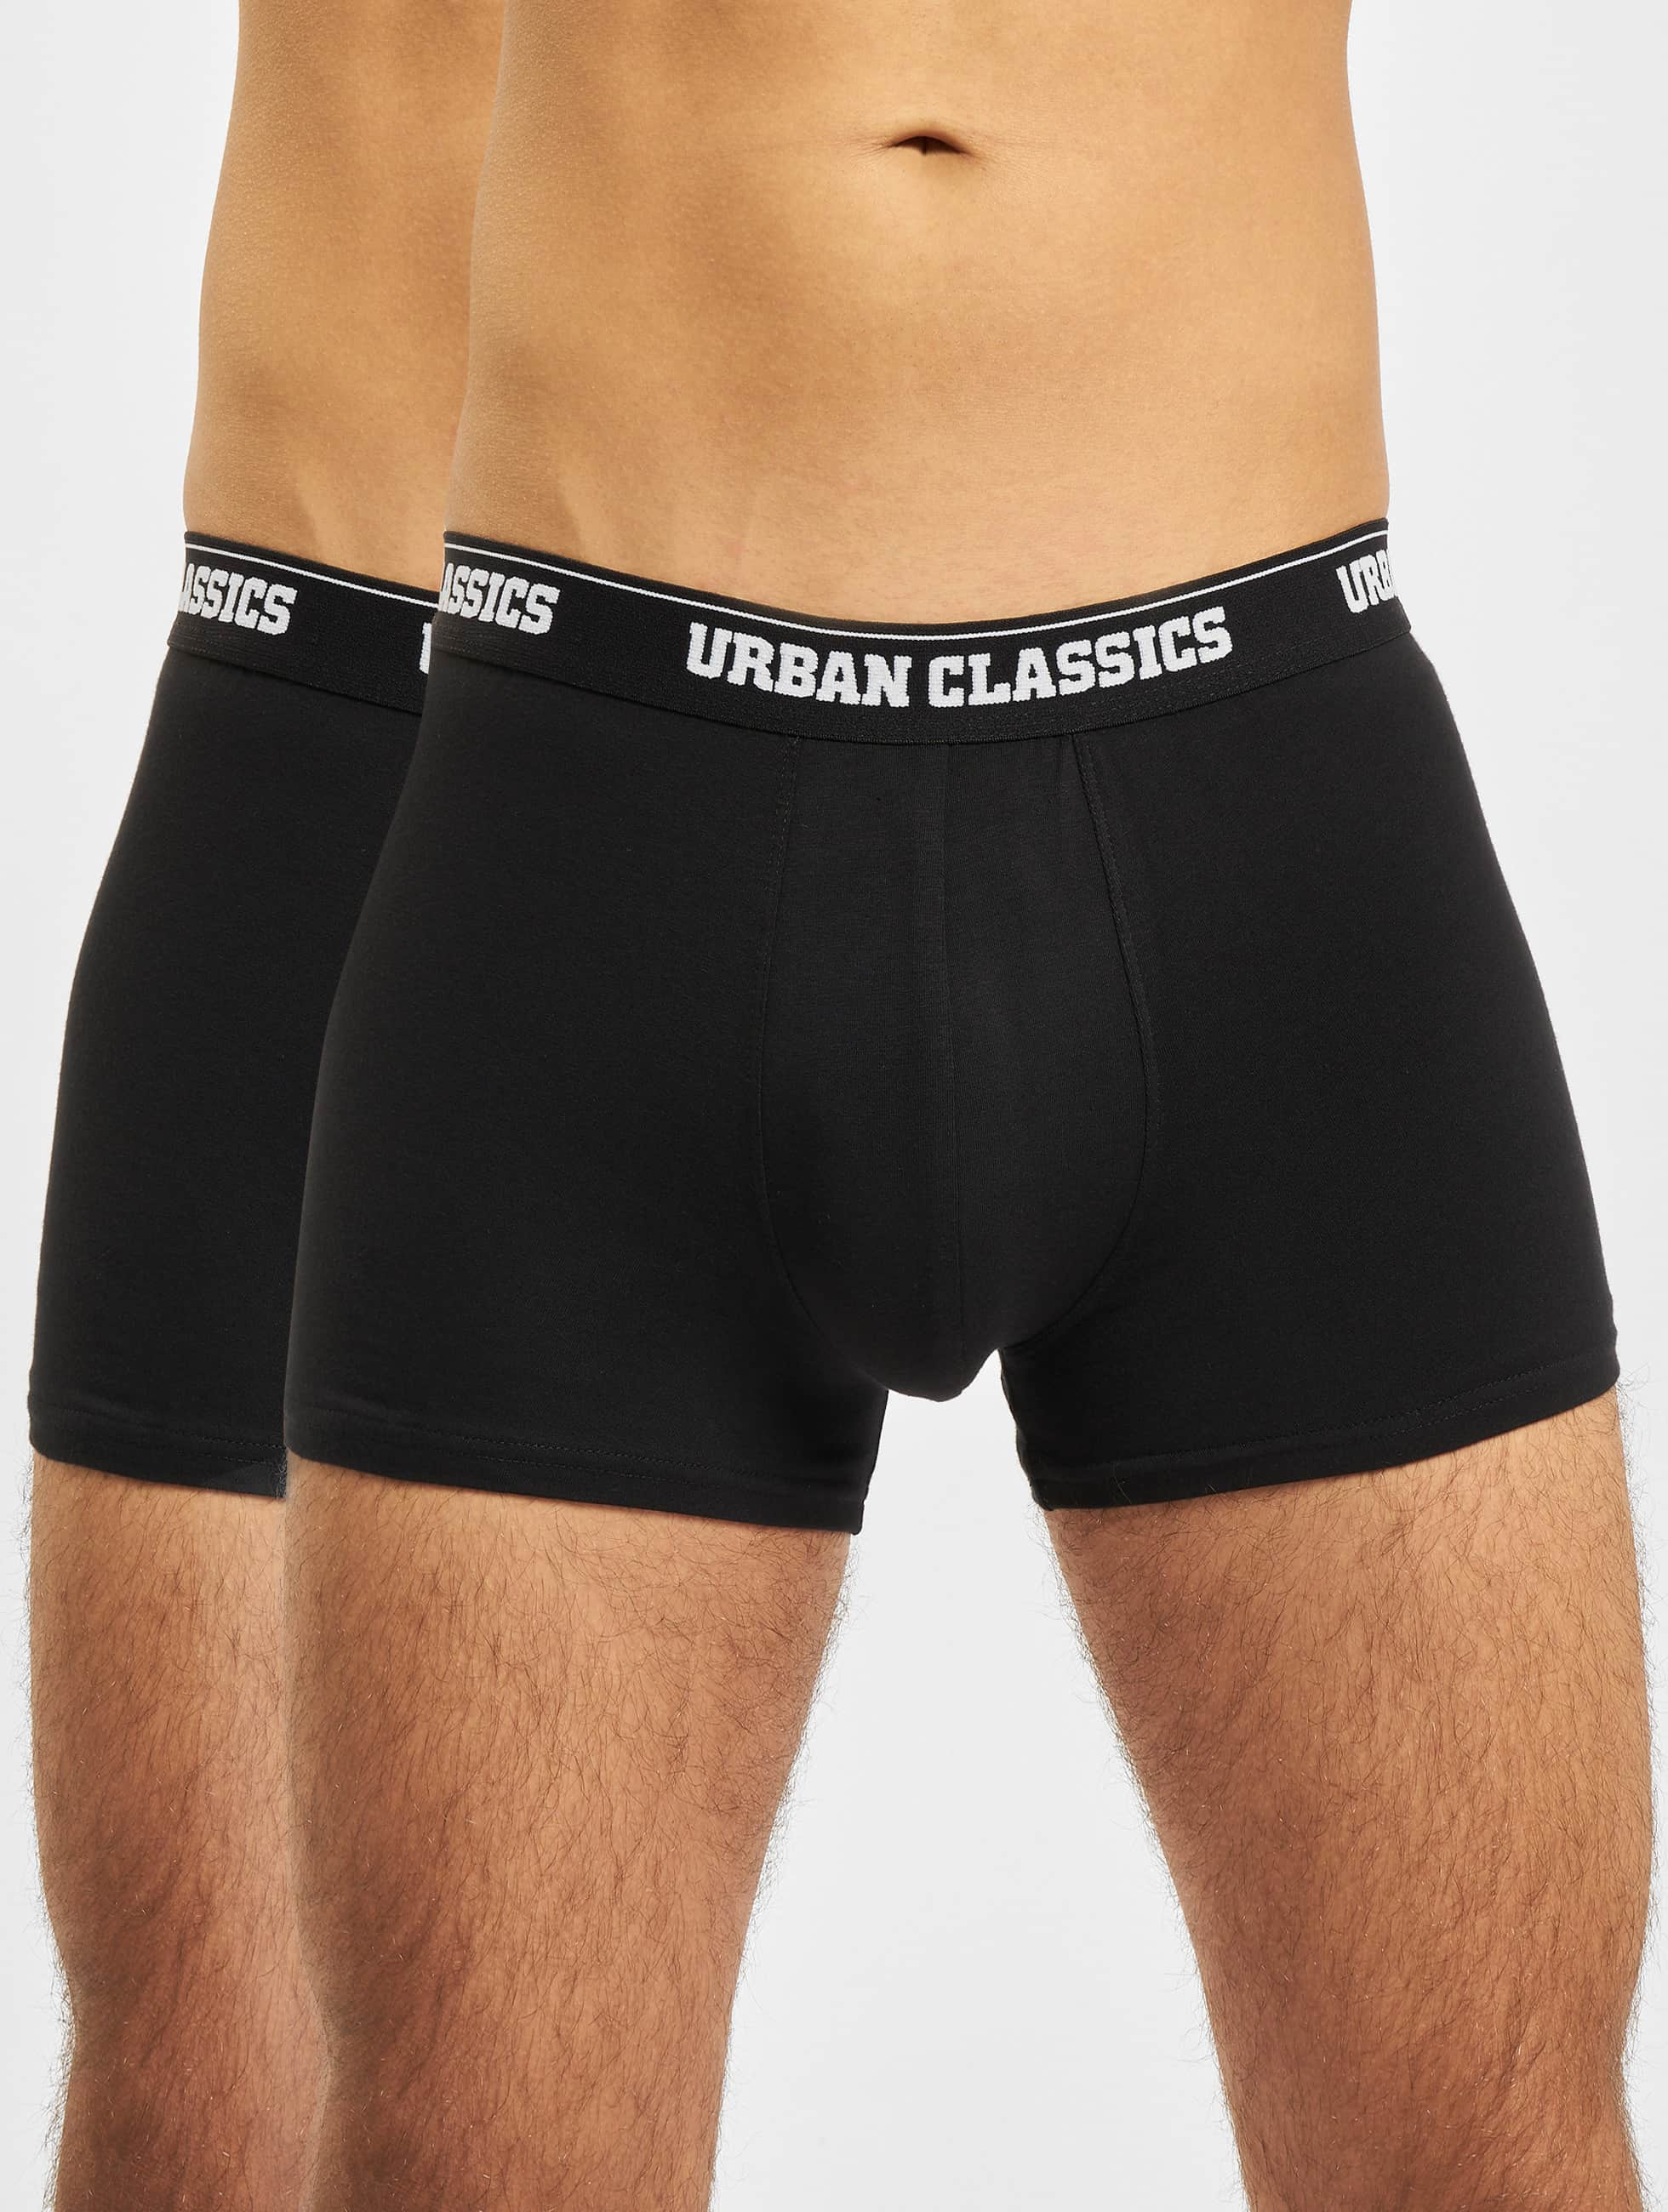 Urban Classics Bokserit Mens Double Pack musta